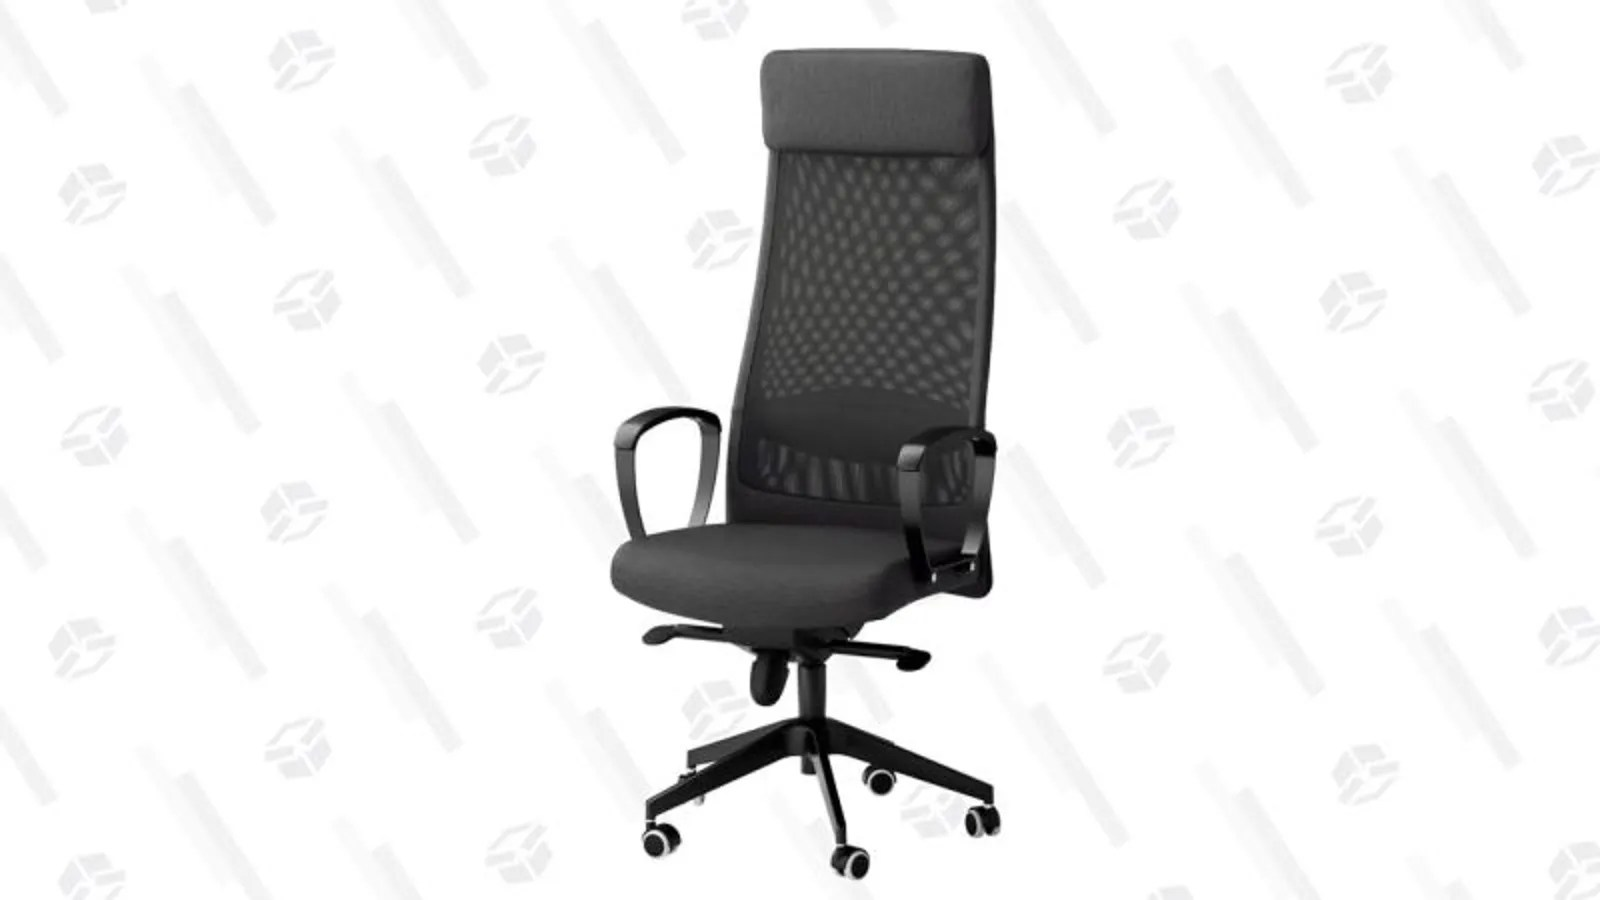 The Best Affordable Office Chair IKEA Markus